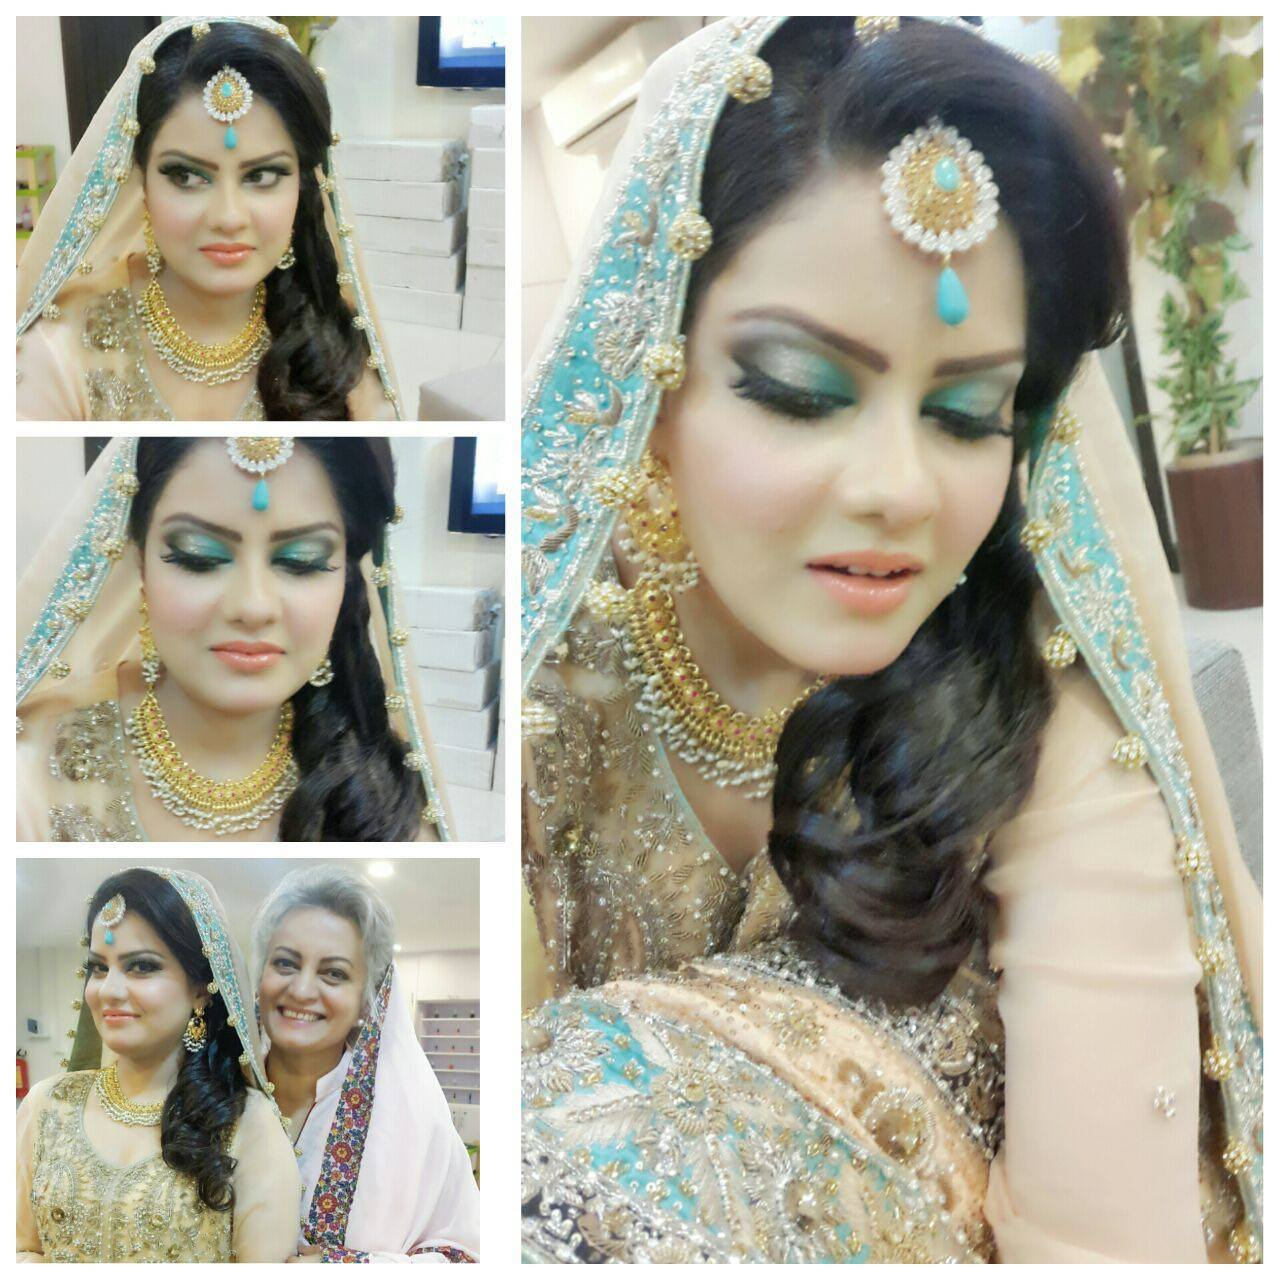 Beauty Hut Salon Islamabad Rawalpindi: Depilex Beauty Clinic & Institute, Services, Makeup